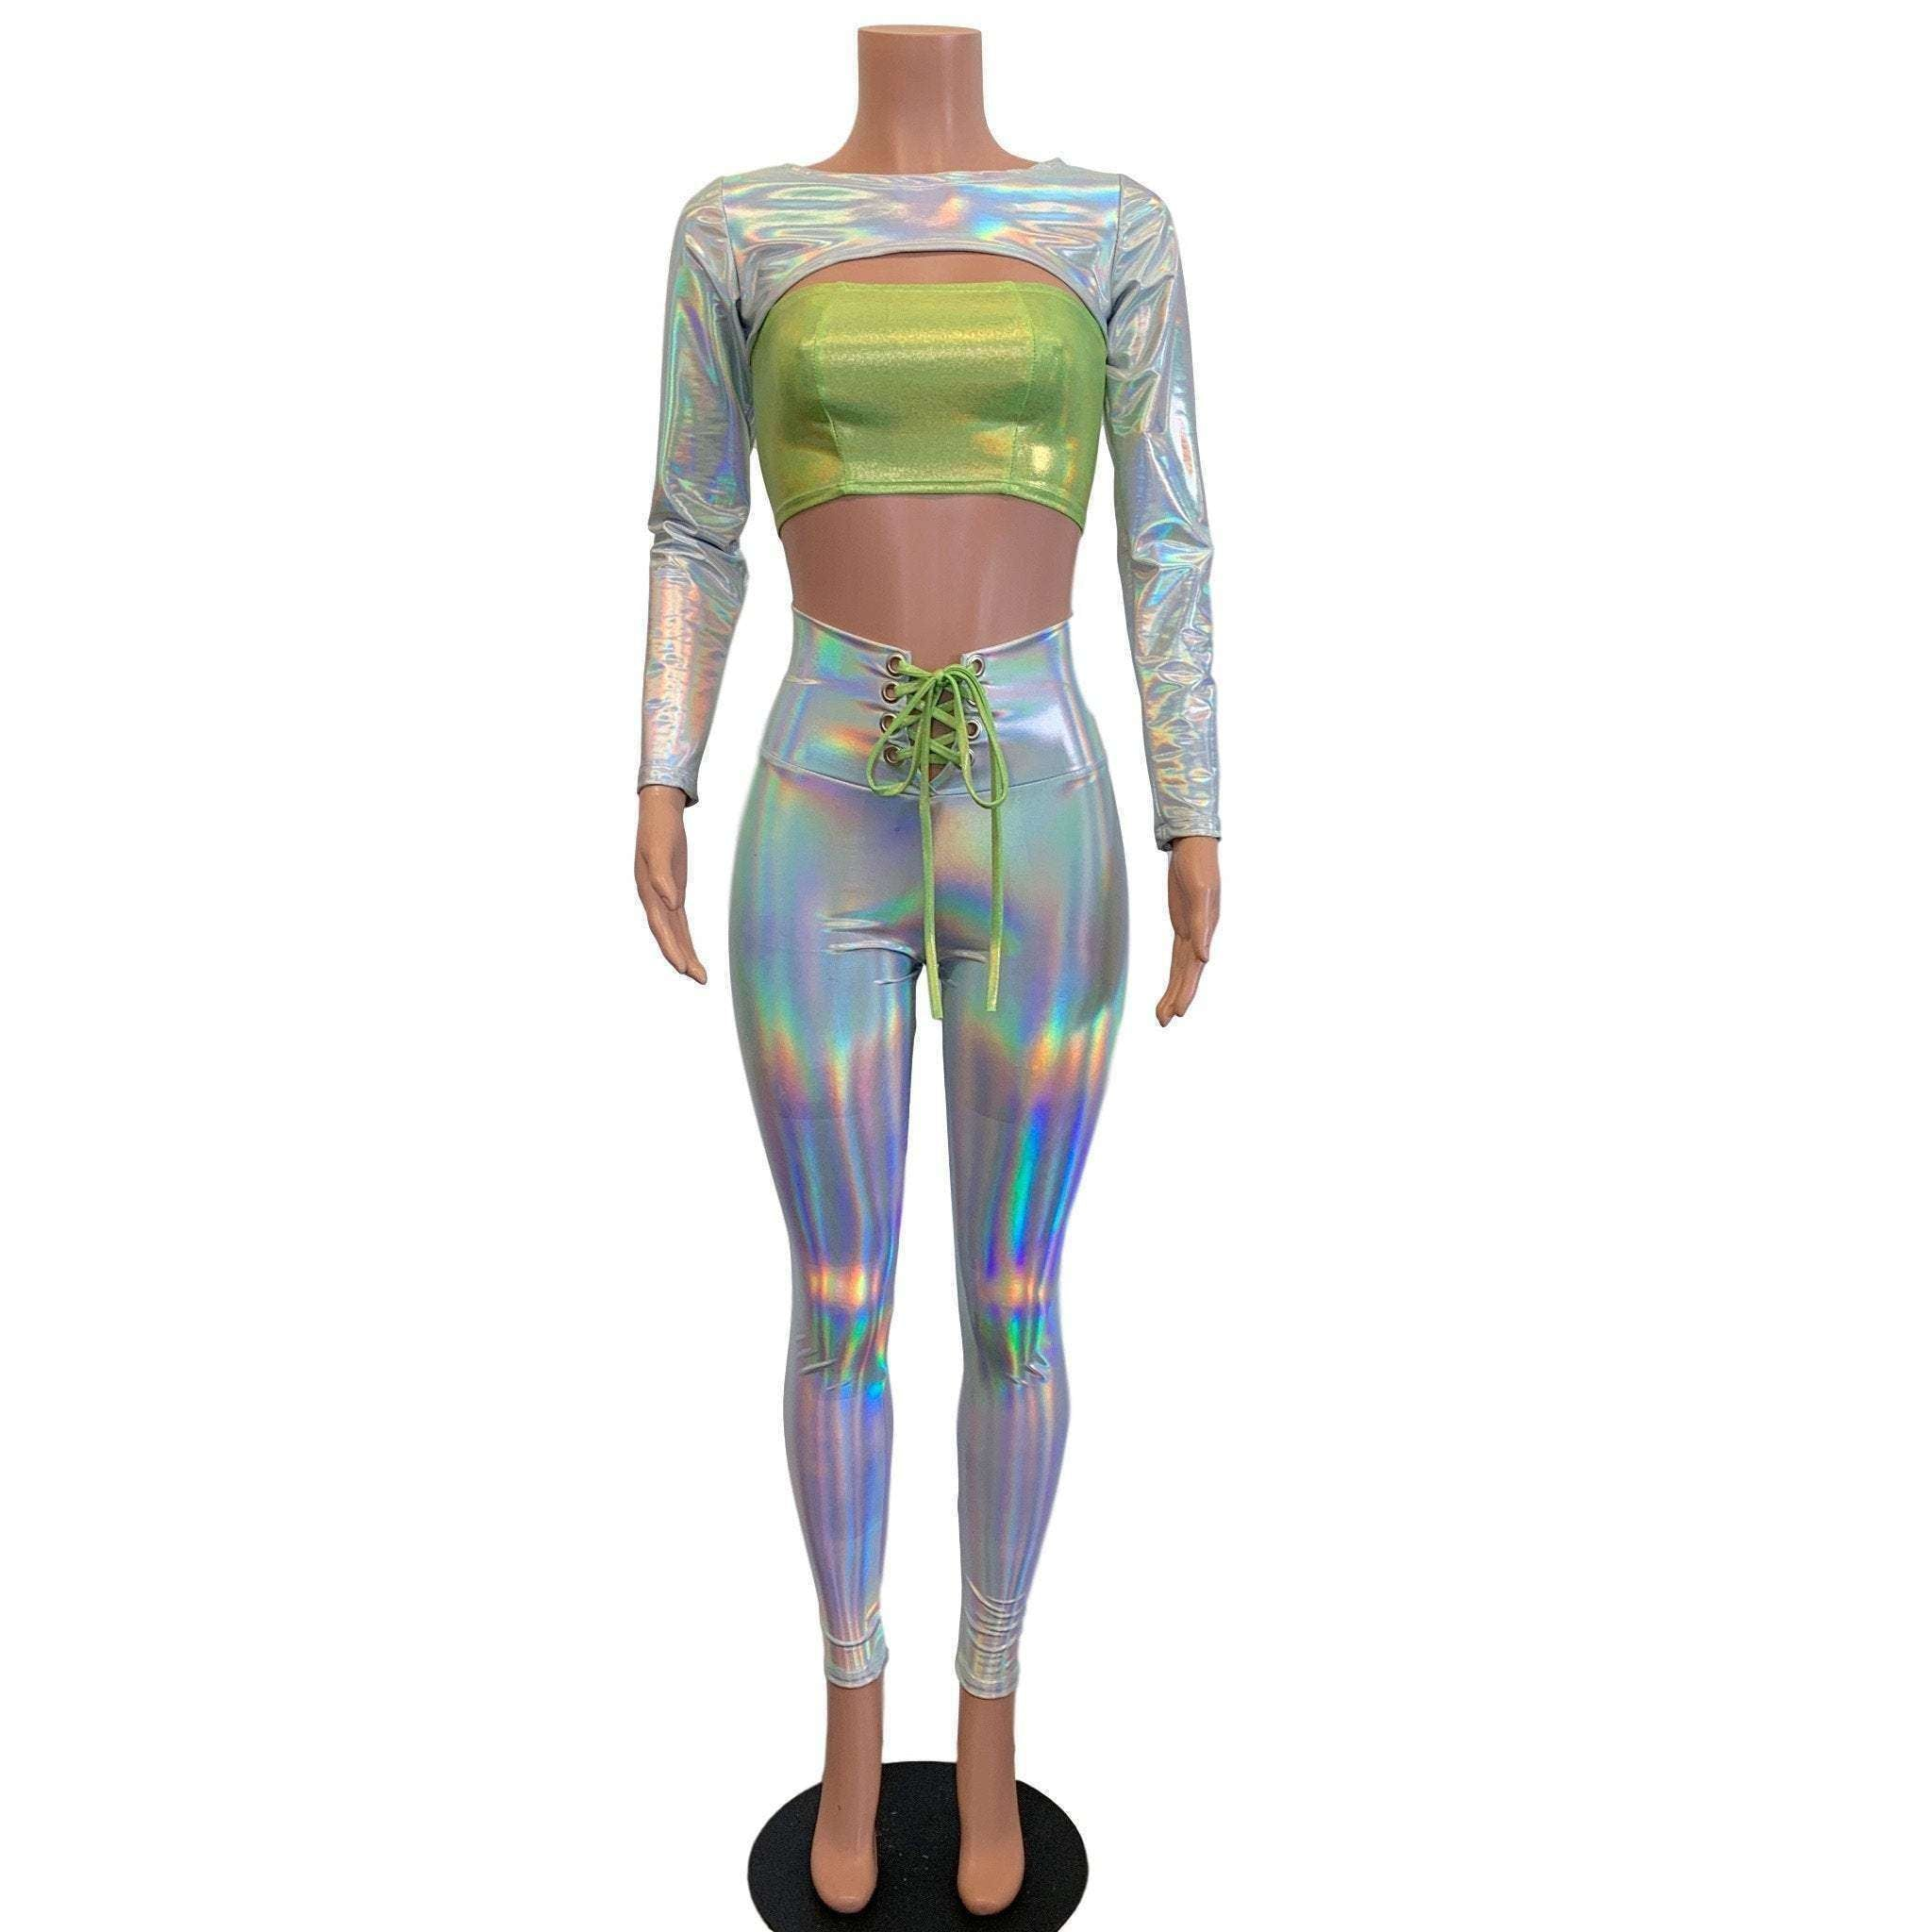 Rave Alien Costume - Opal Holographic Iridescent image